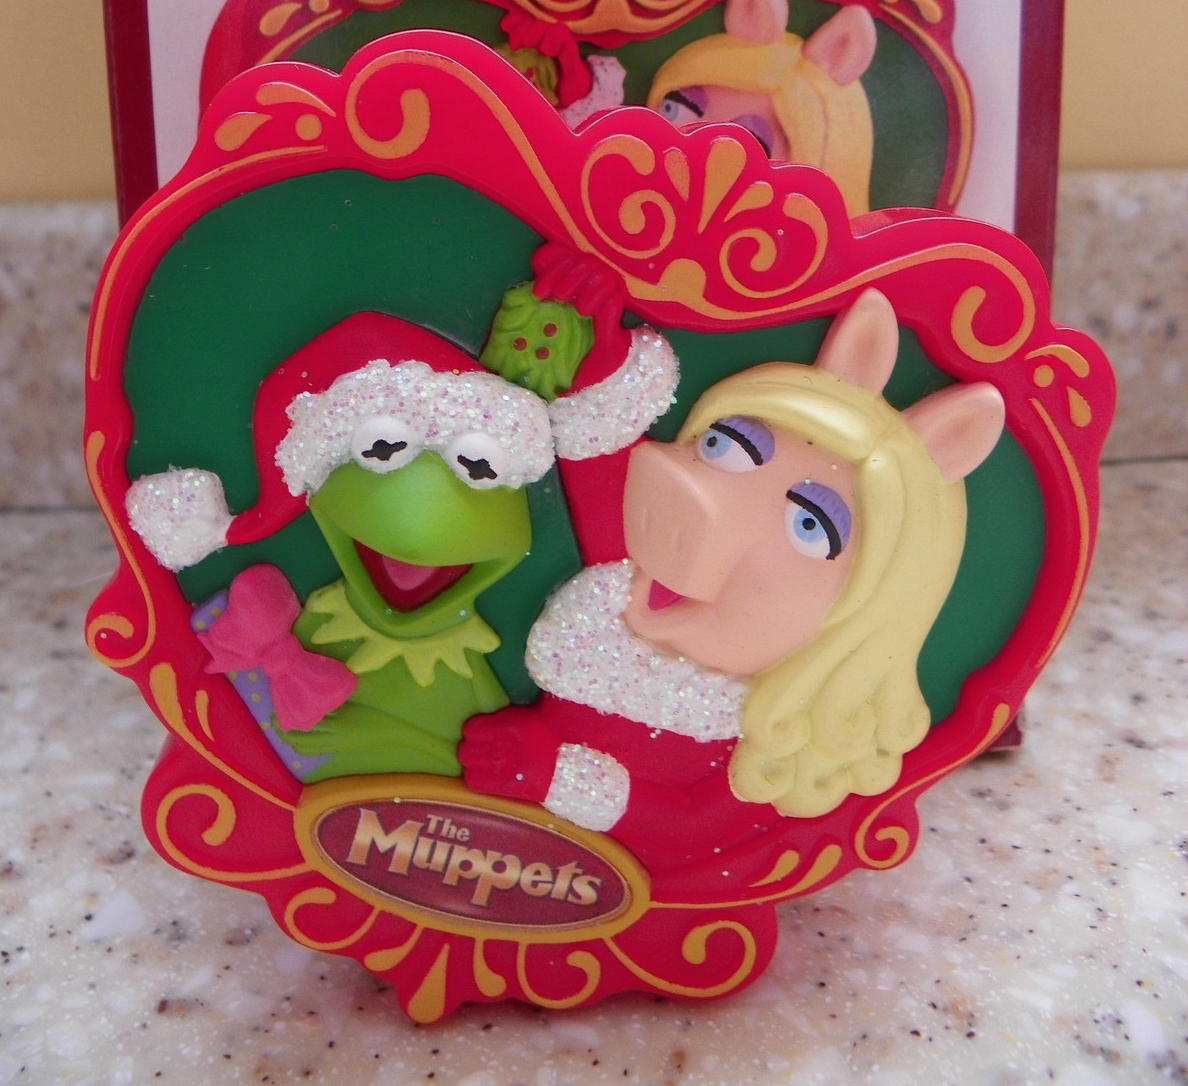 Muppet Christmas Ornaments (American Greetings)